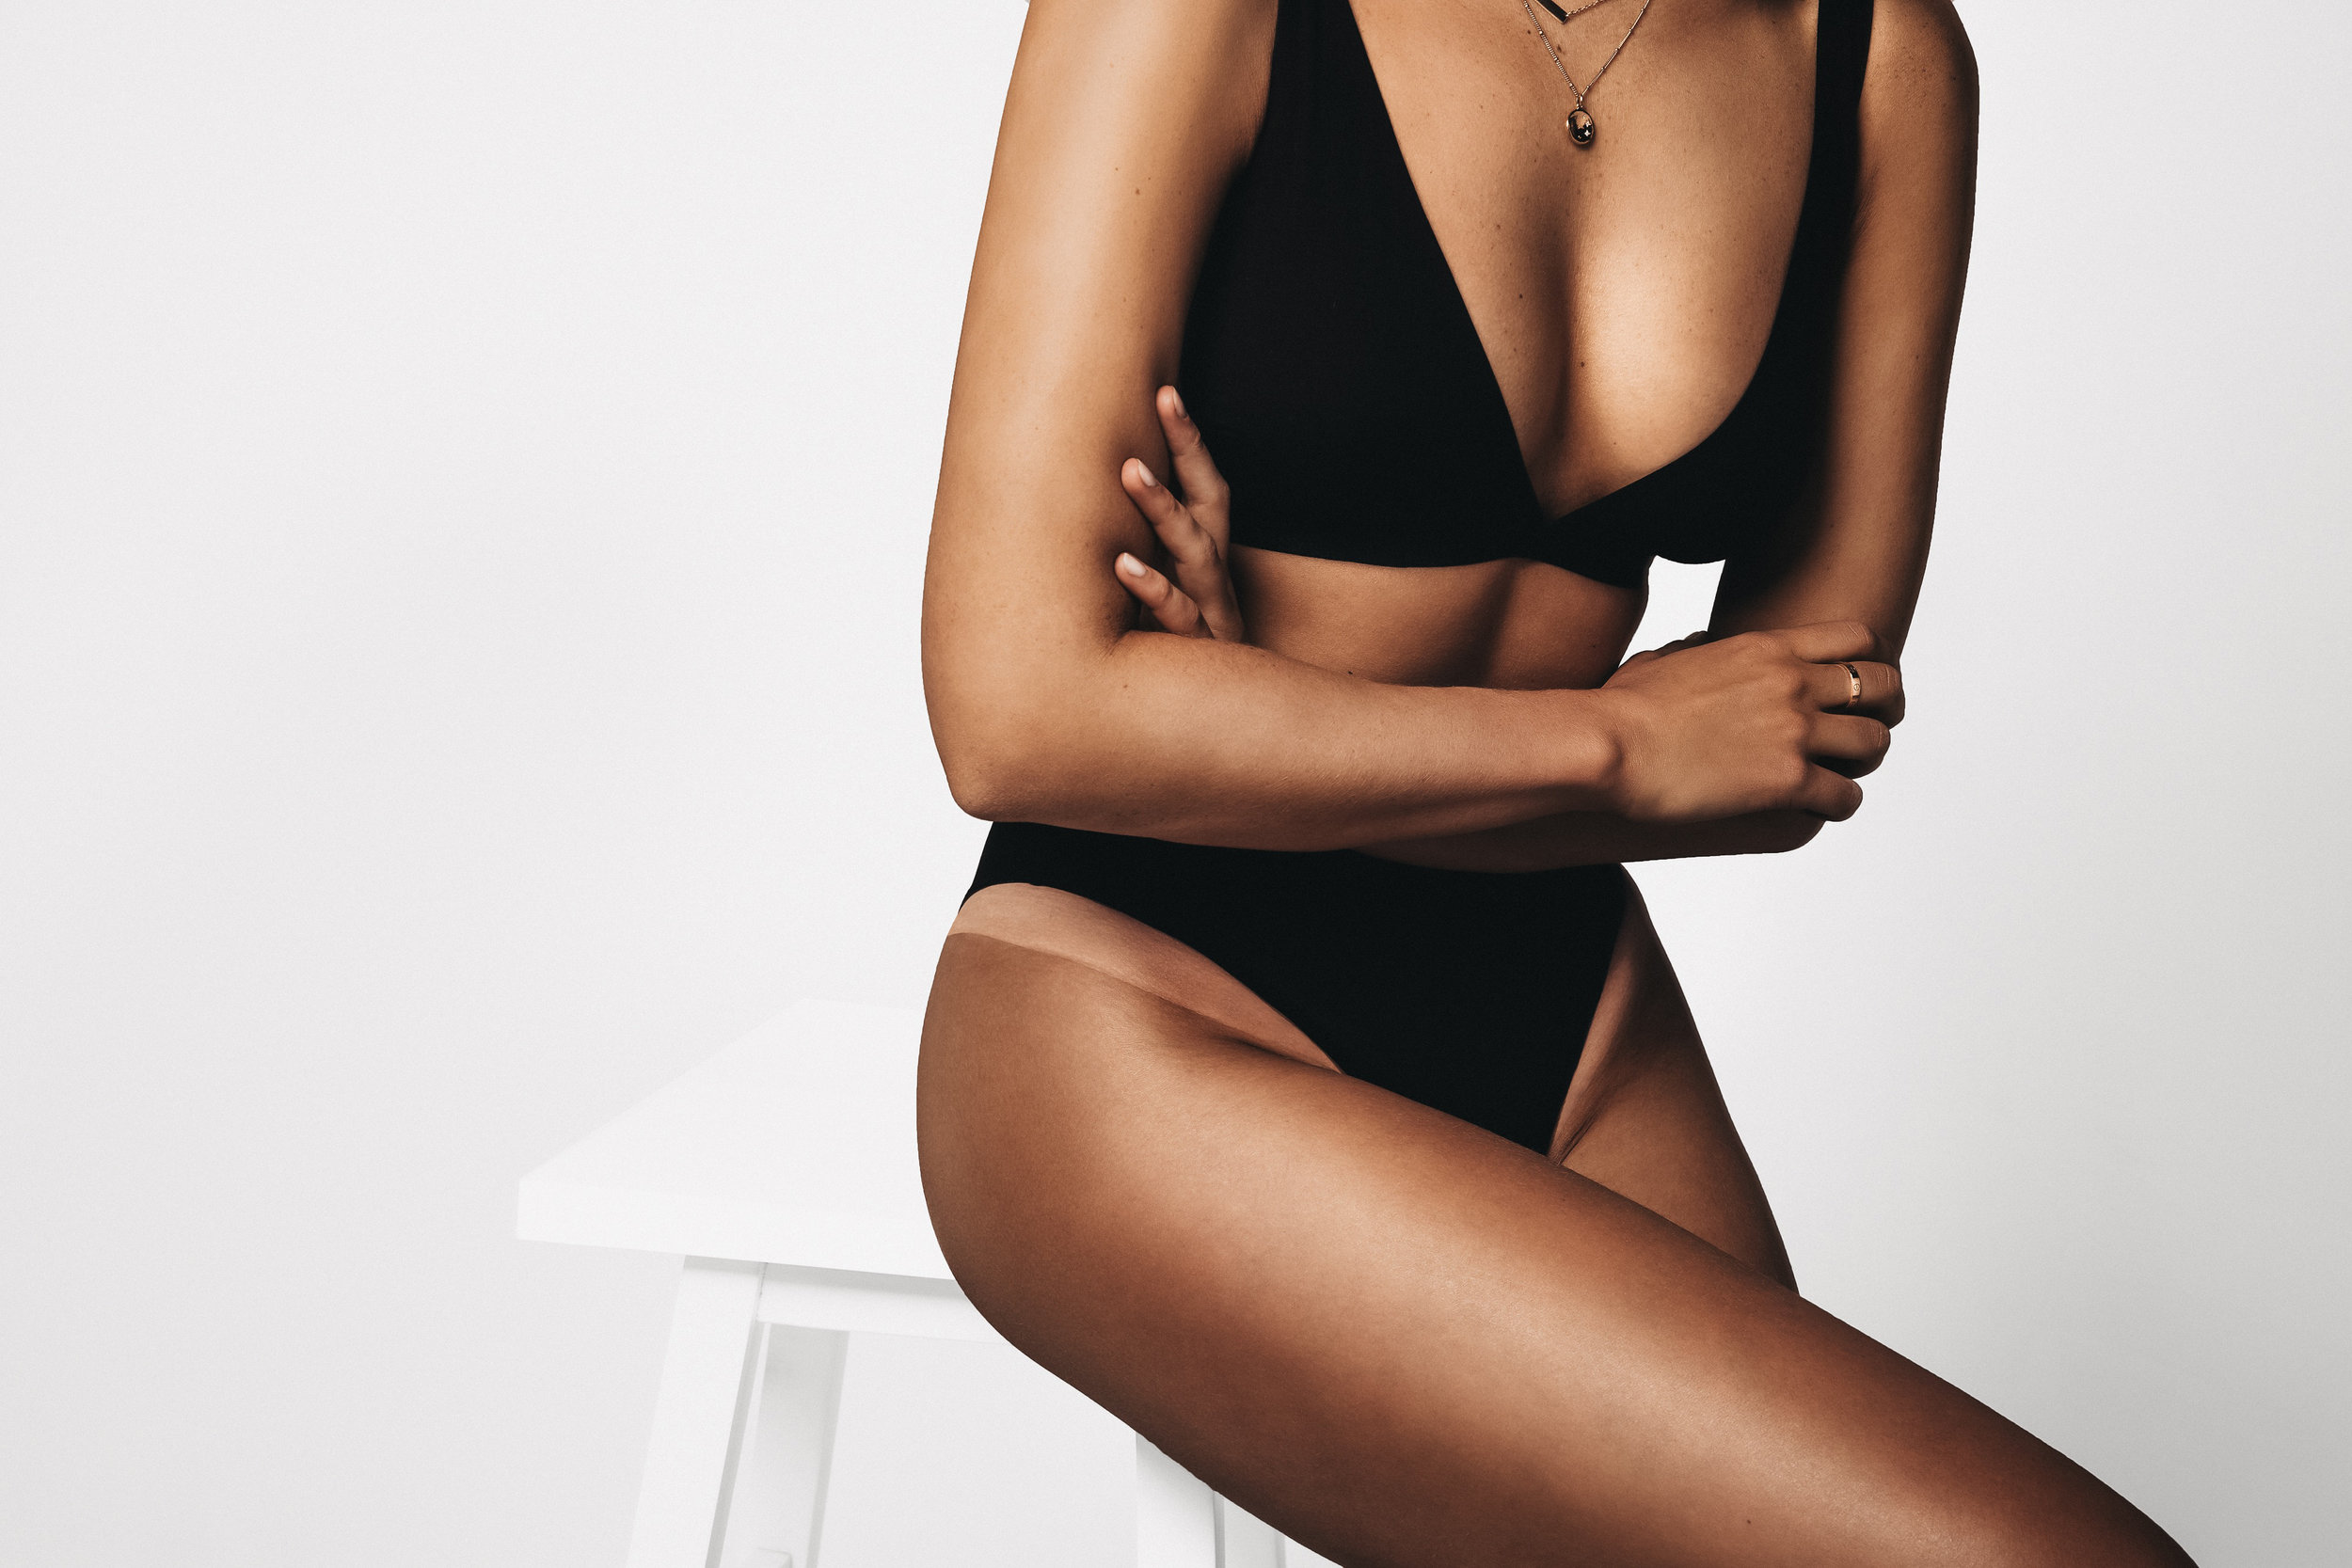 tuscan tan | The beauty company moonee ponds | spray tan | fake tan near me